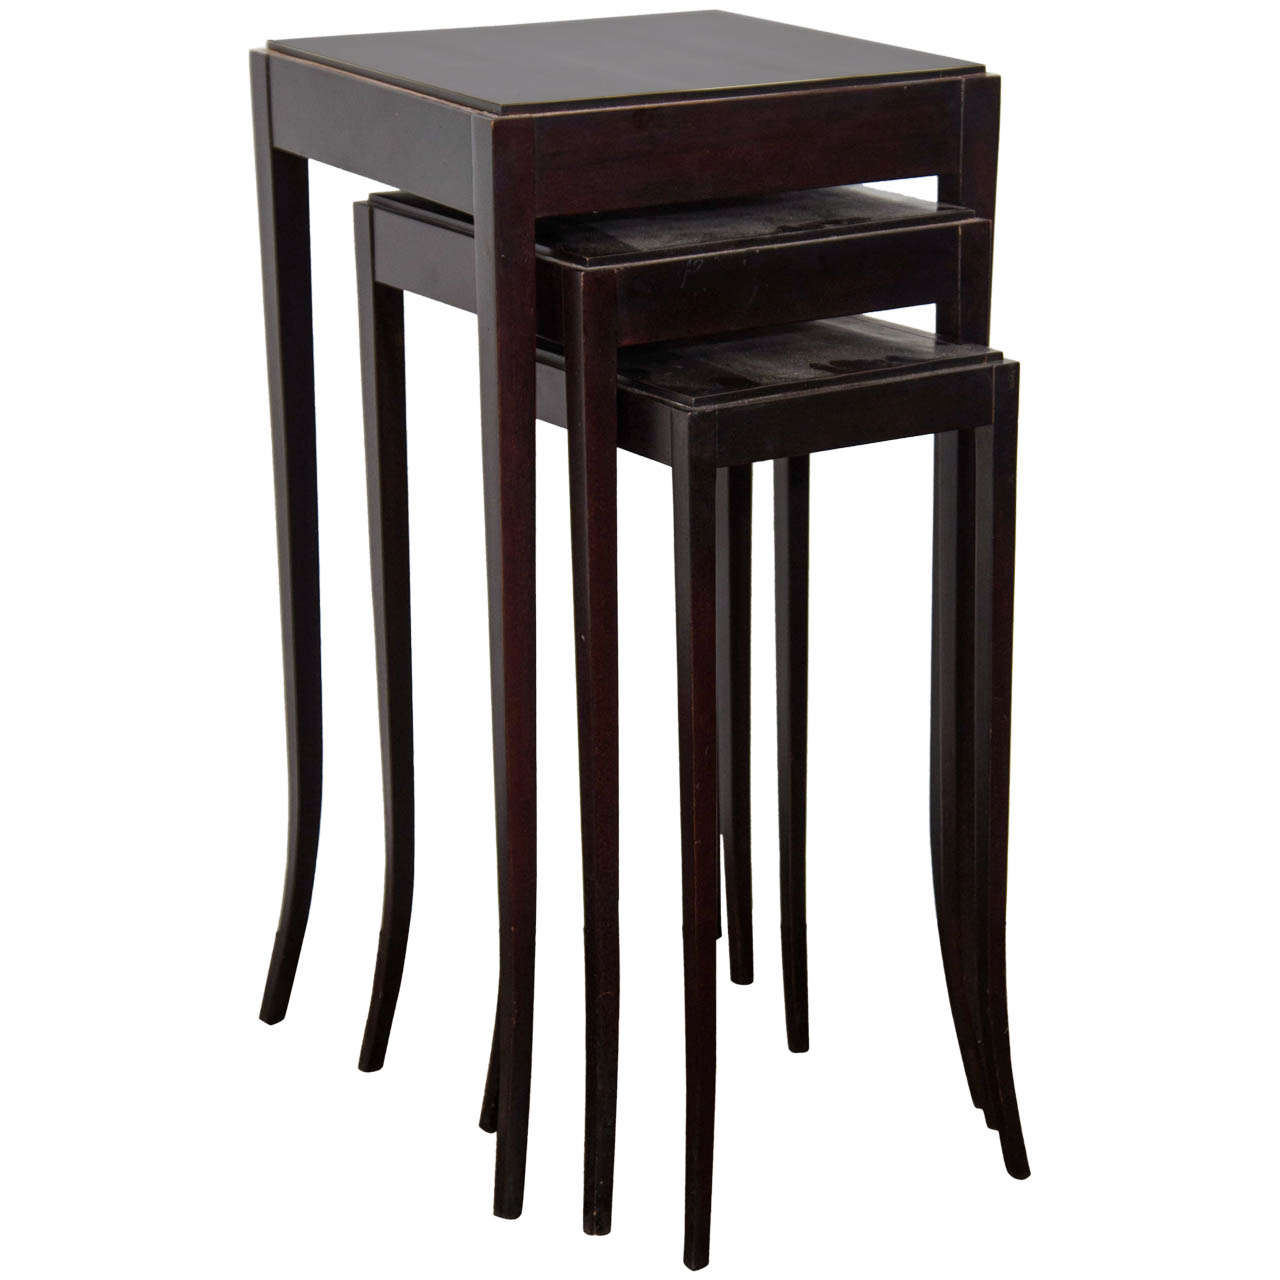 Barbara Barry Cabinet Barbara Barry Mahogany Nesting Tables For Baker At 1stdibs